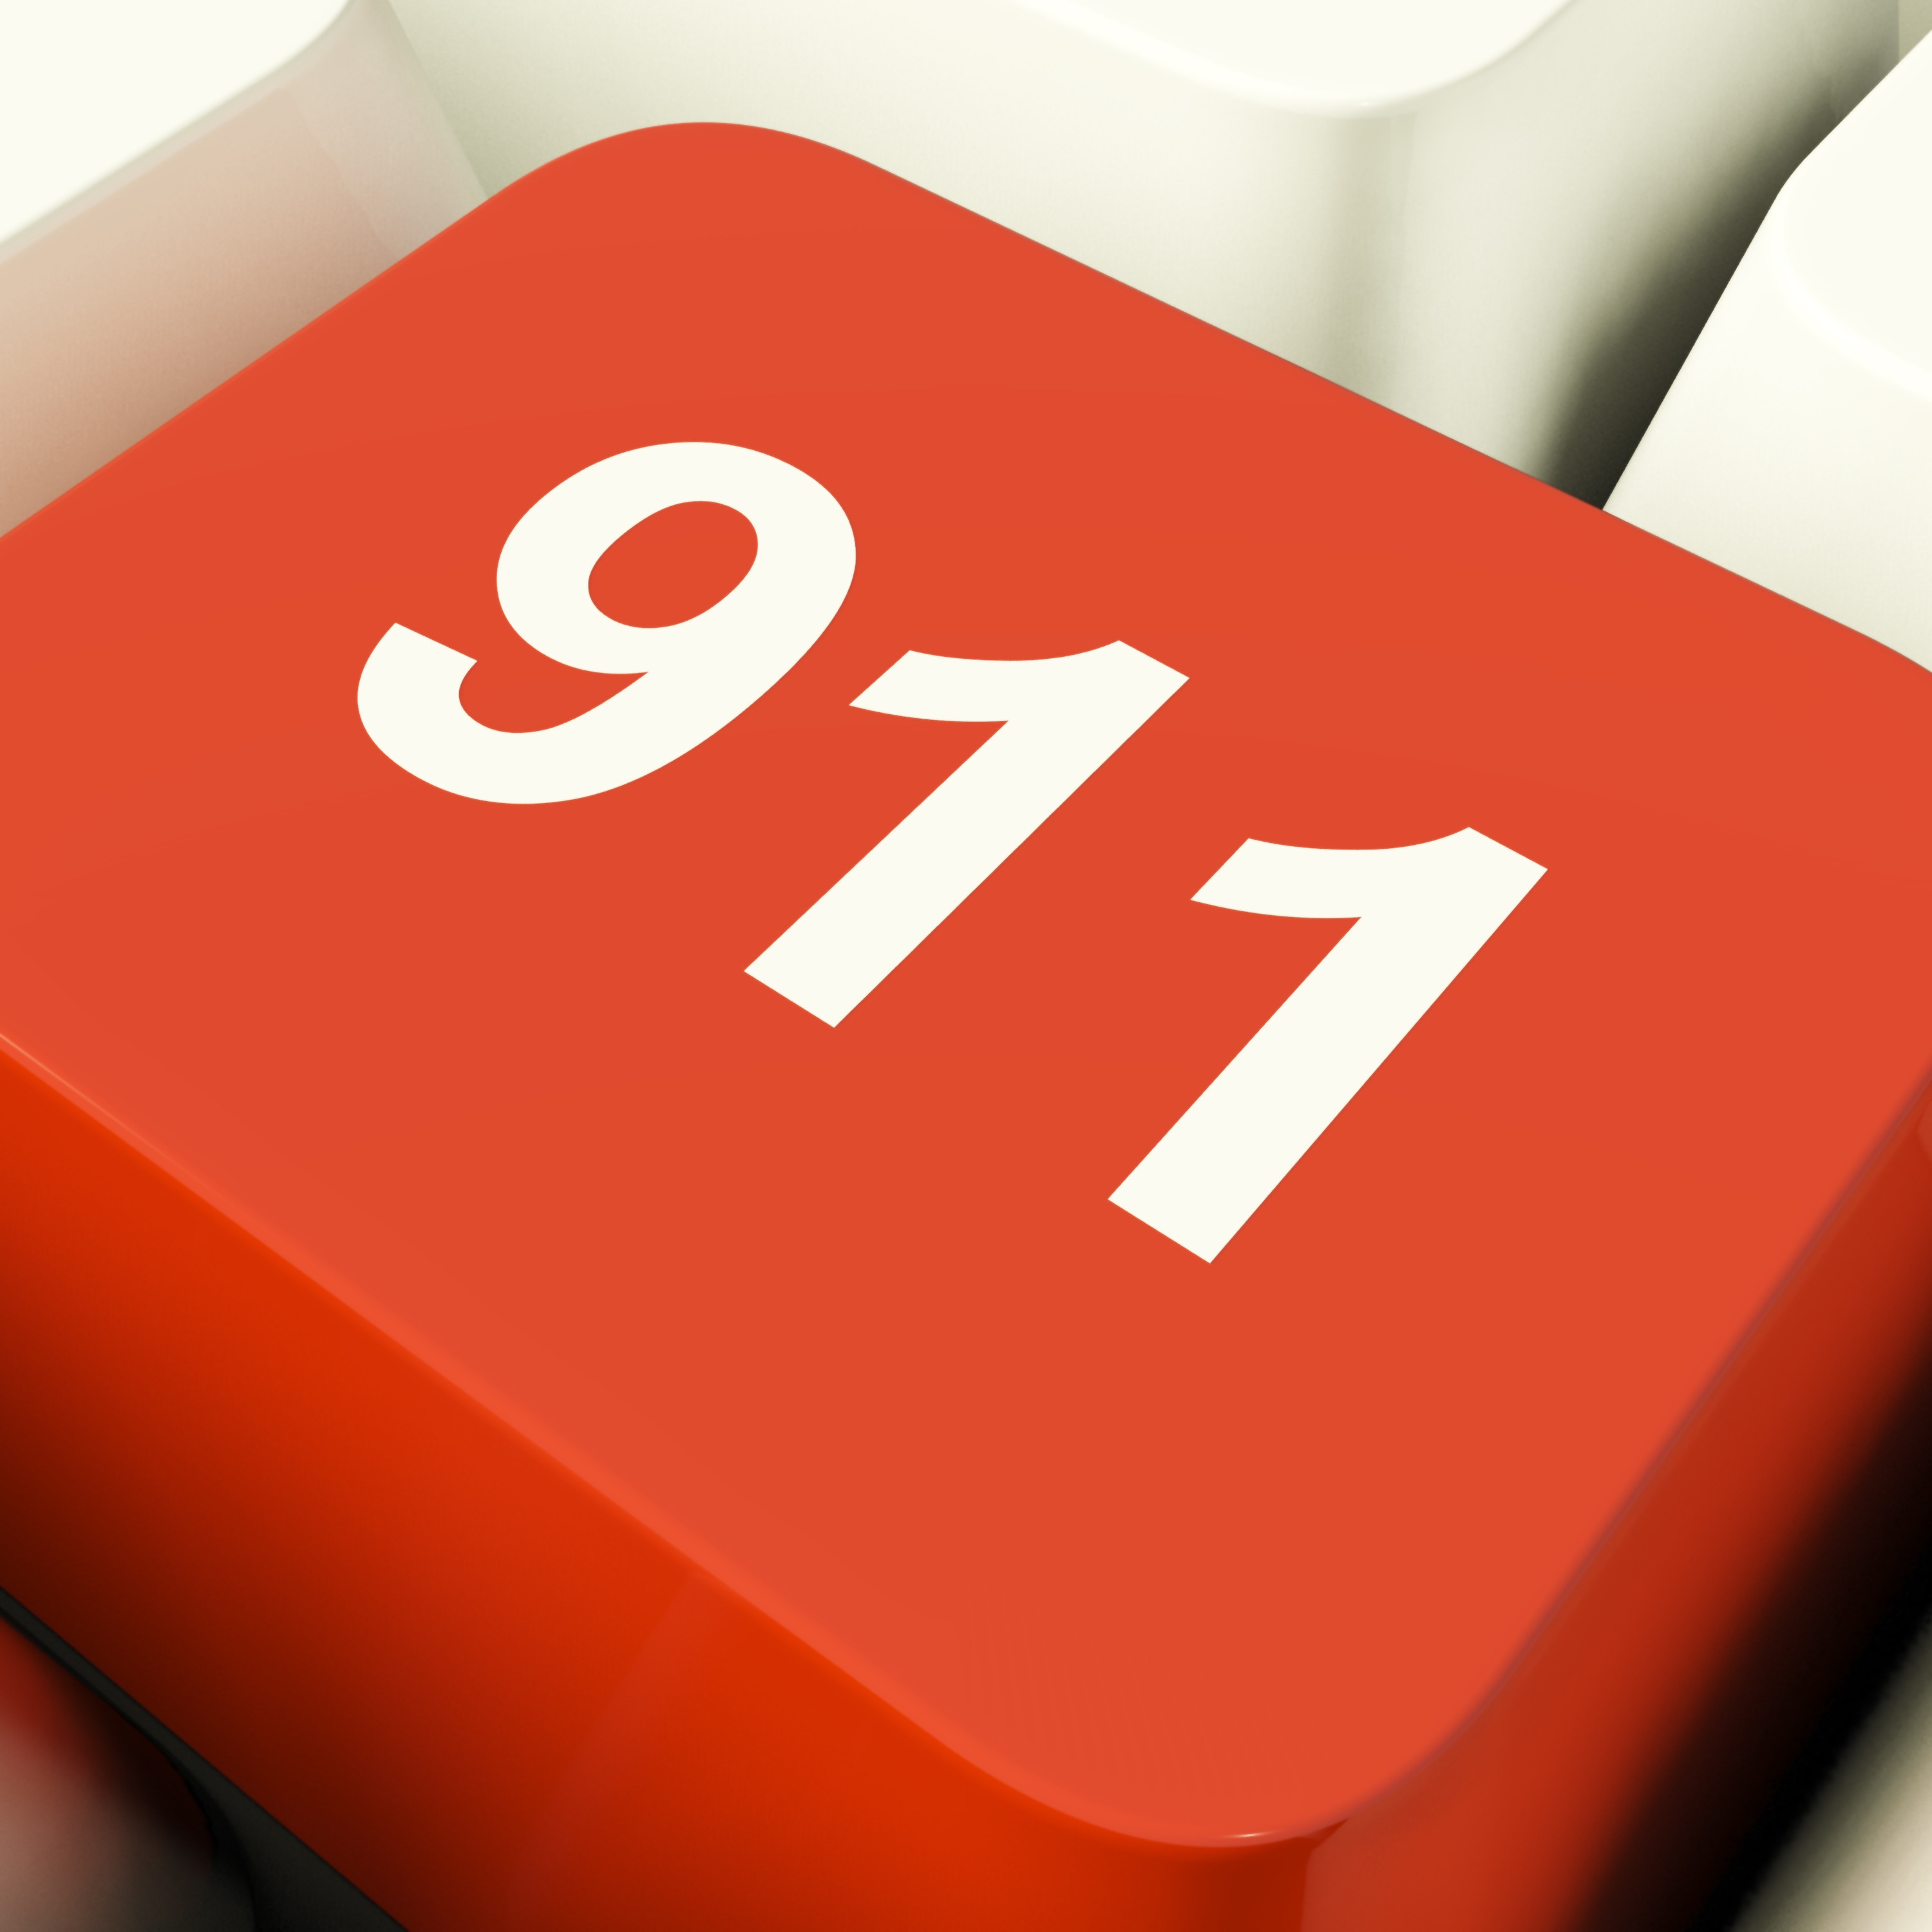 911 Button in an Article About Overcoming Interoperability